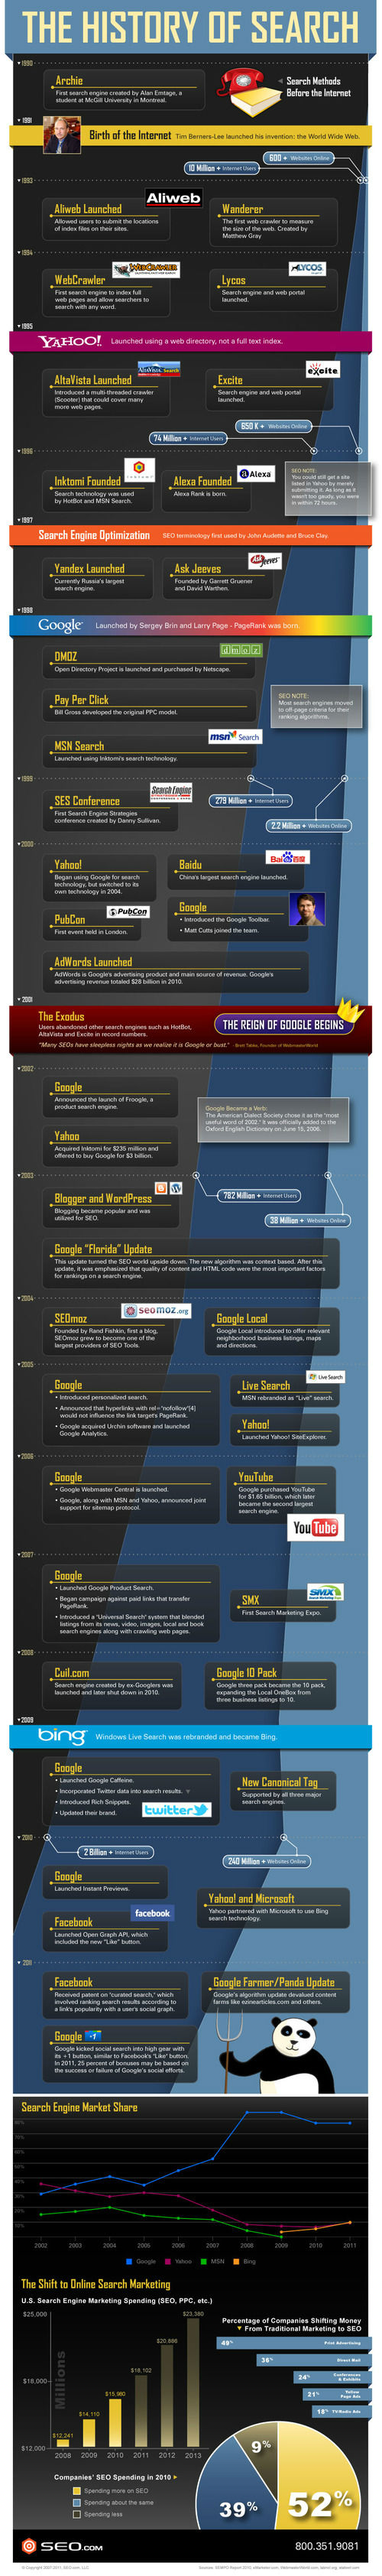 The Histrory of Search [infographic]